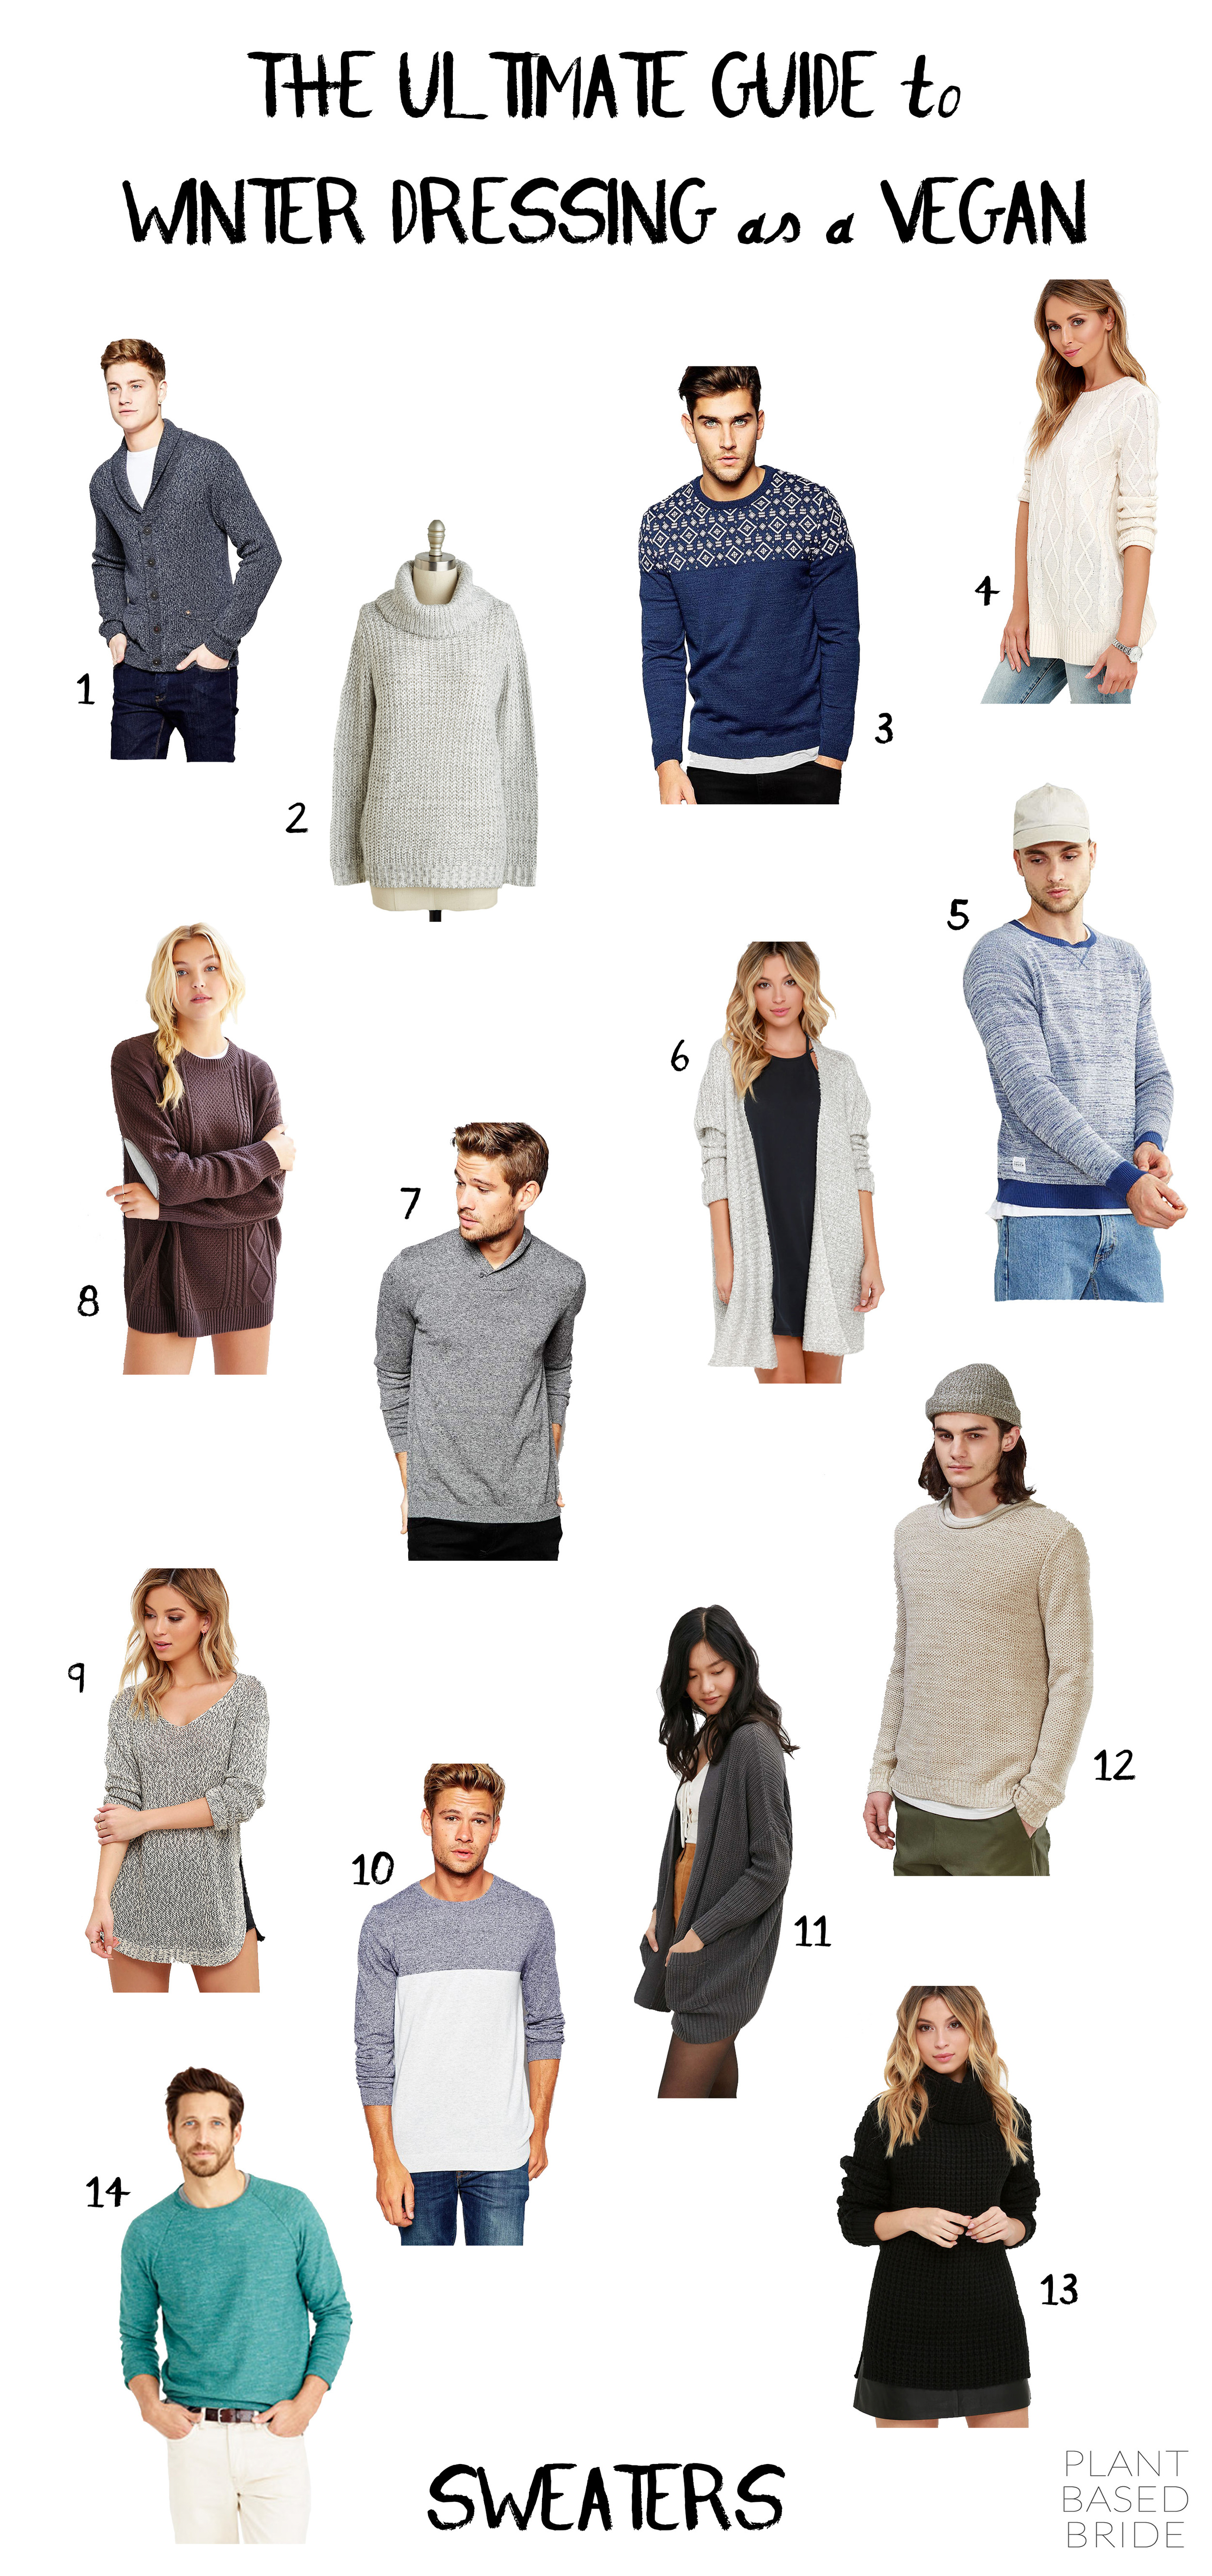 Vegan Sweaters // The Ultimate Guide to Winter Dressing as a Vegan // Plant Based Bride